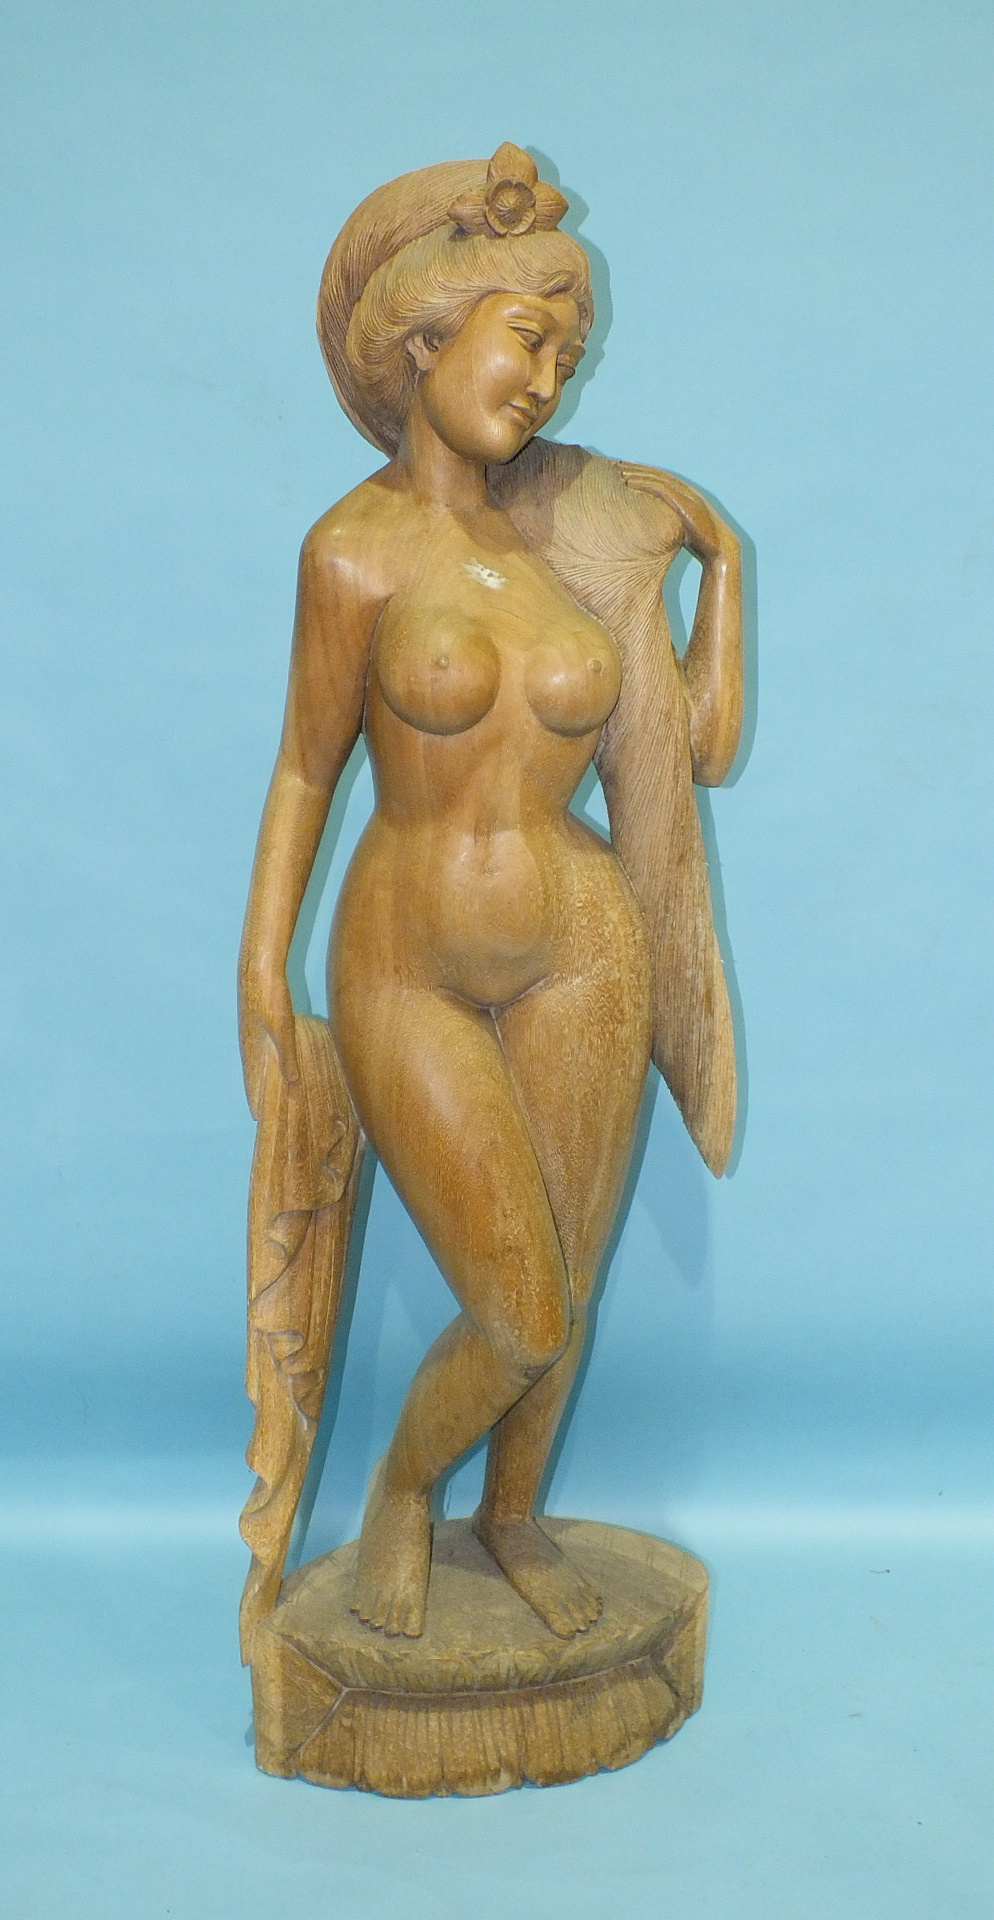 Lot 178 - A Thai carved wood figure of a naked young woman with long flowing hair, standing on a plinth, 154cm